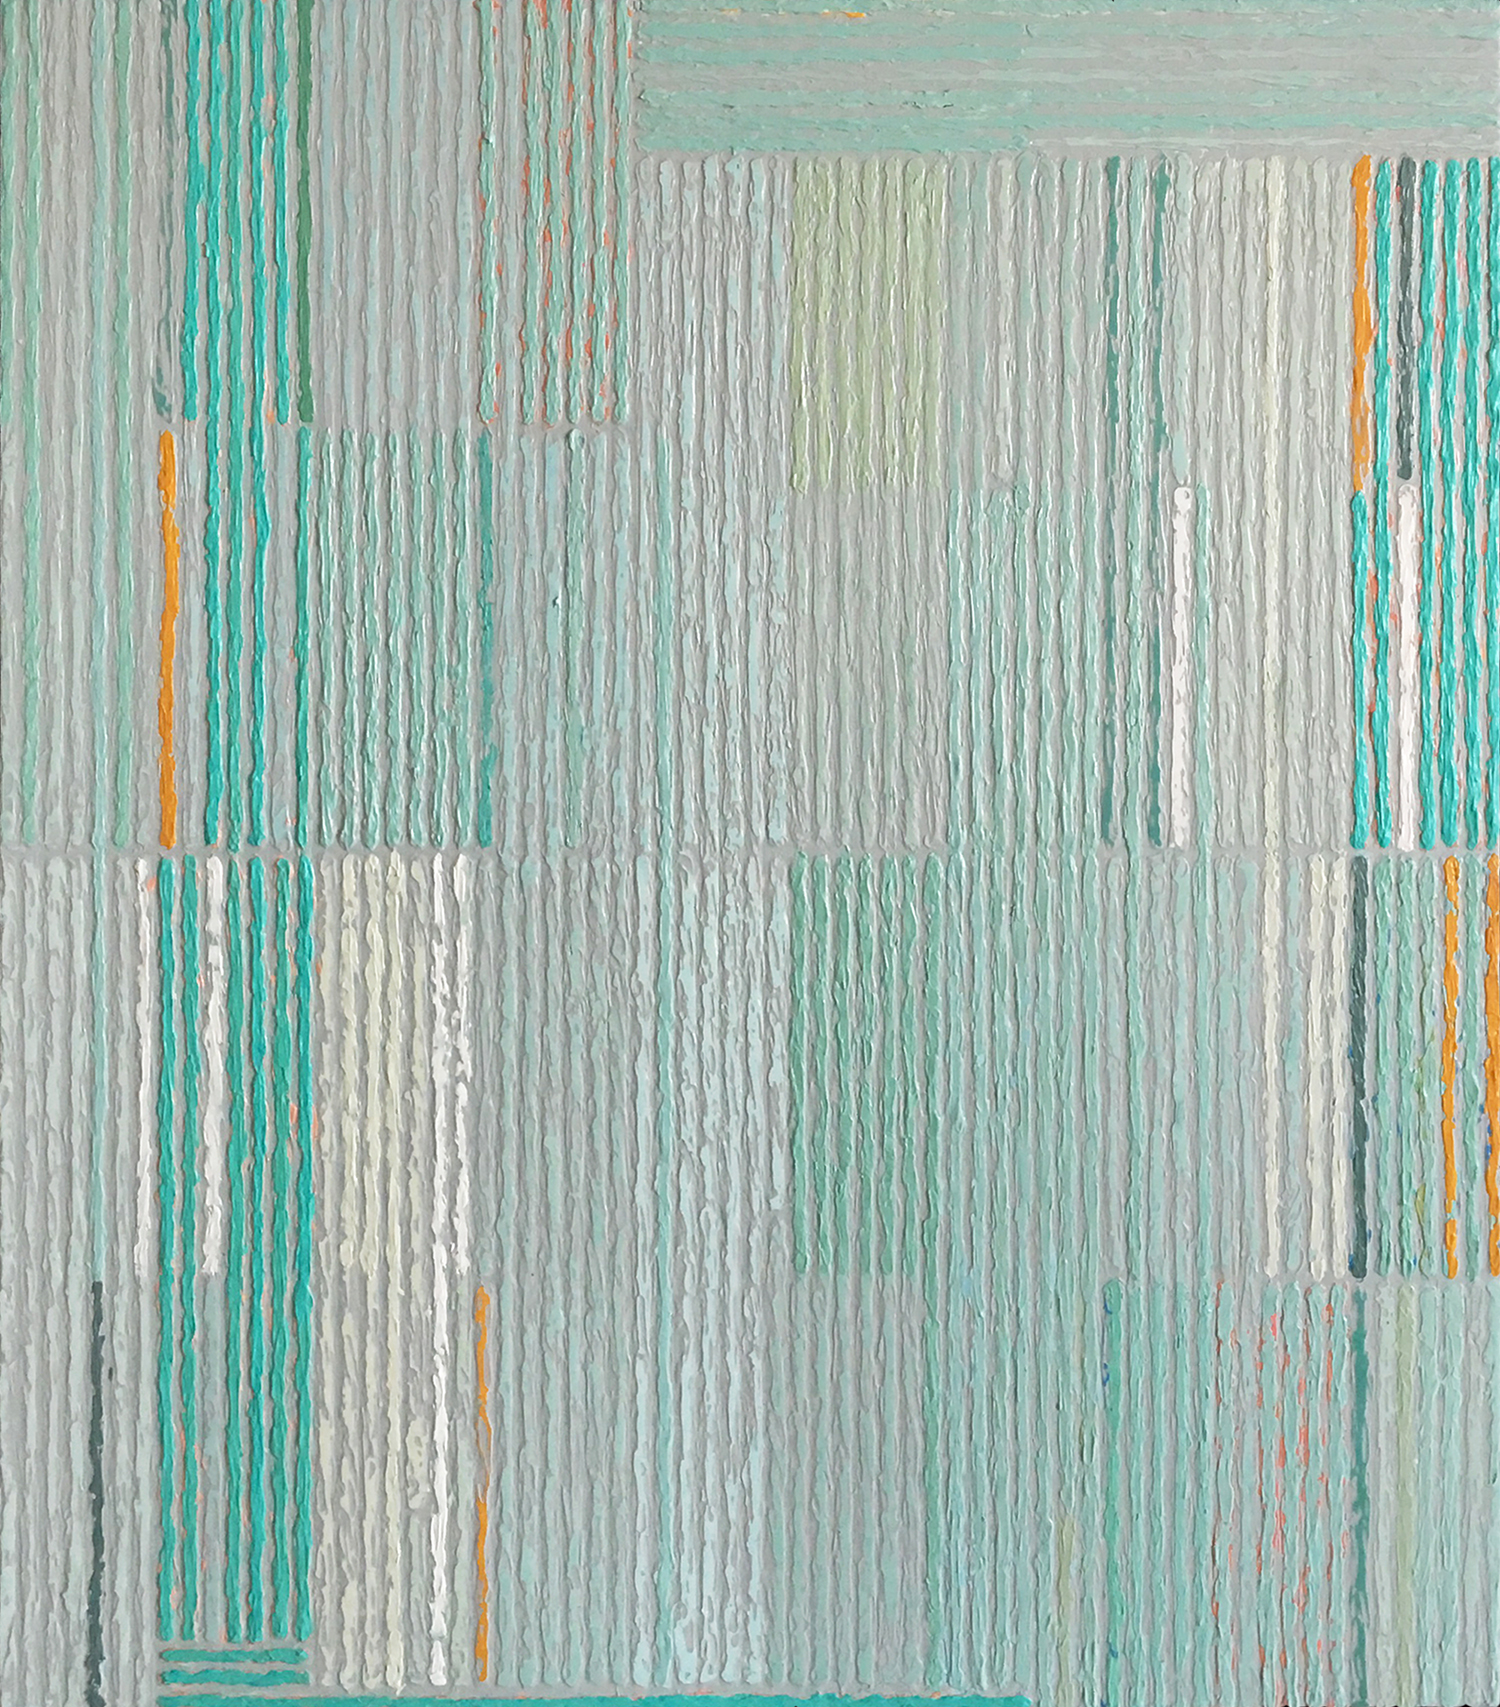 Composition with Aqua Bars,  acrylic on panel, 29x25""